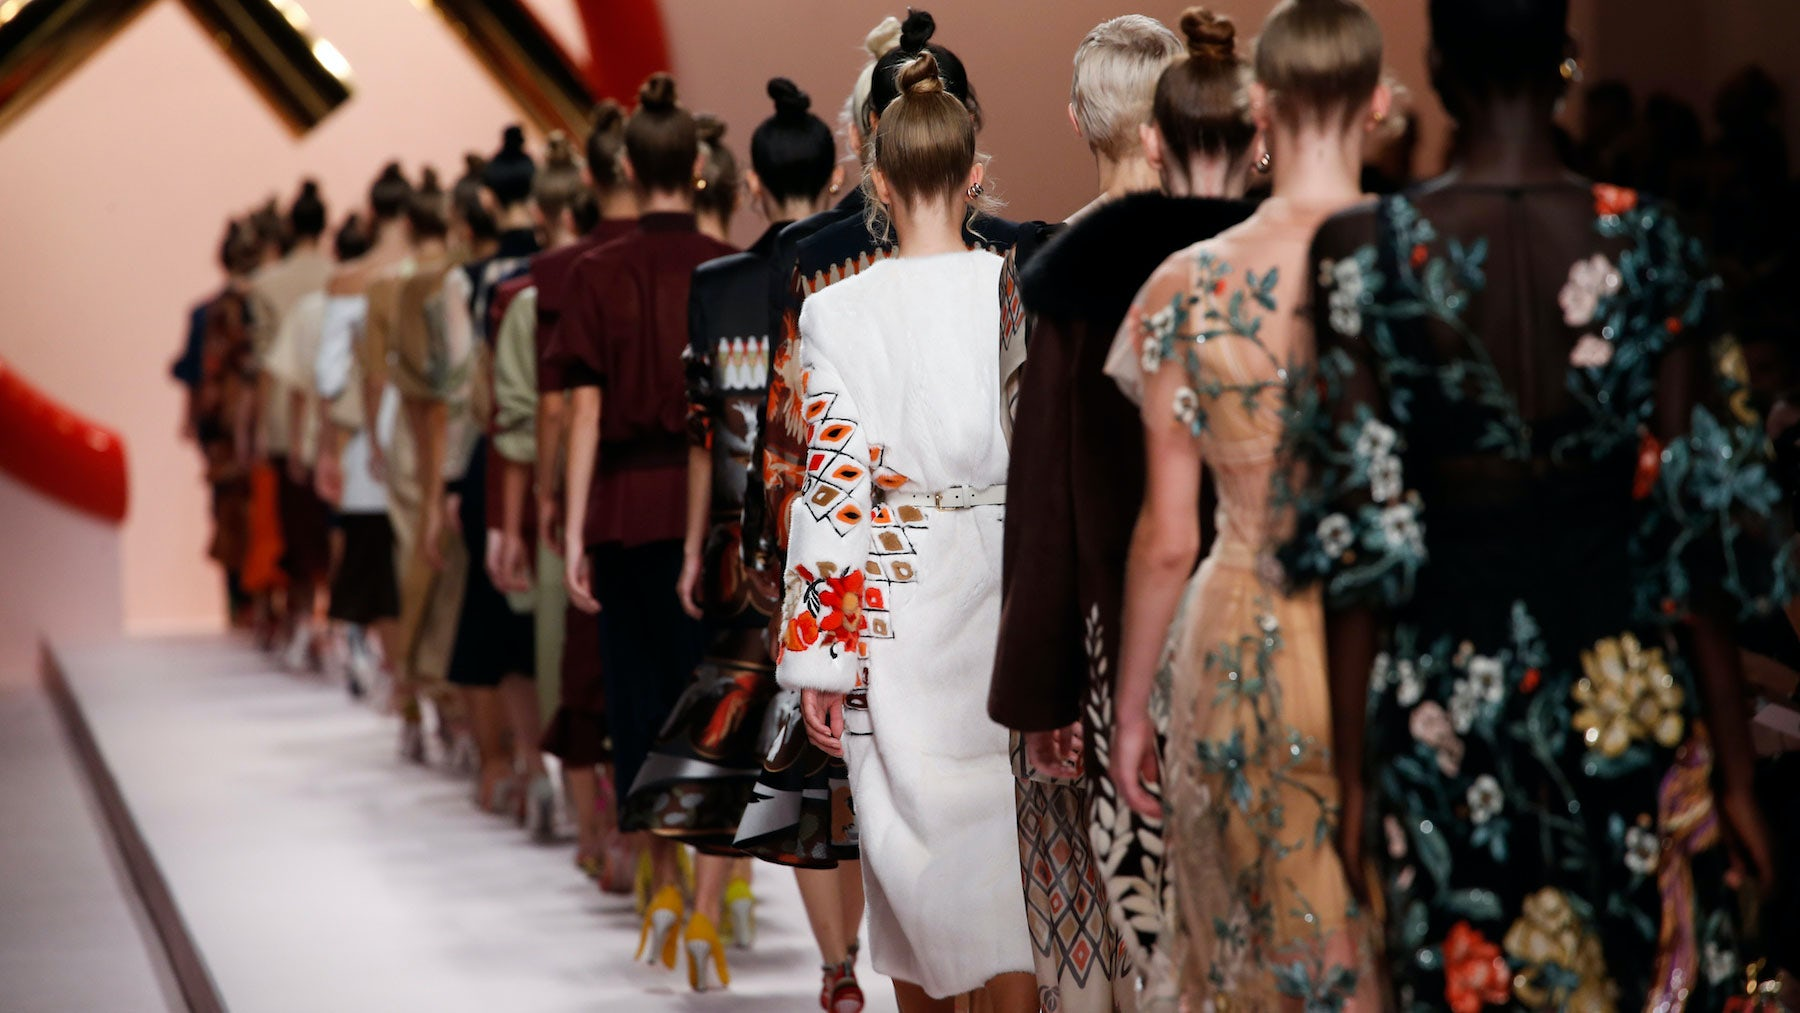 Versace, Fendi and Gucci Have Something to Prove at Milan Fashion Week